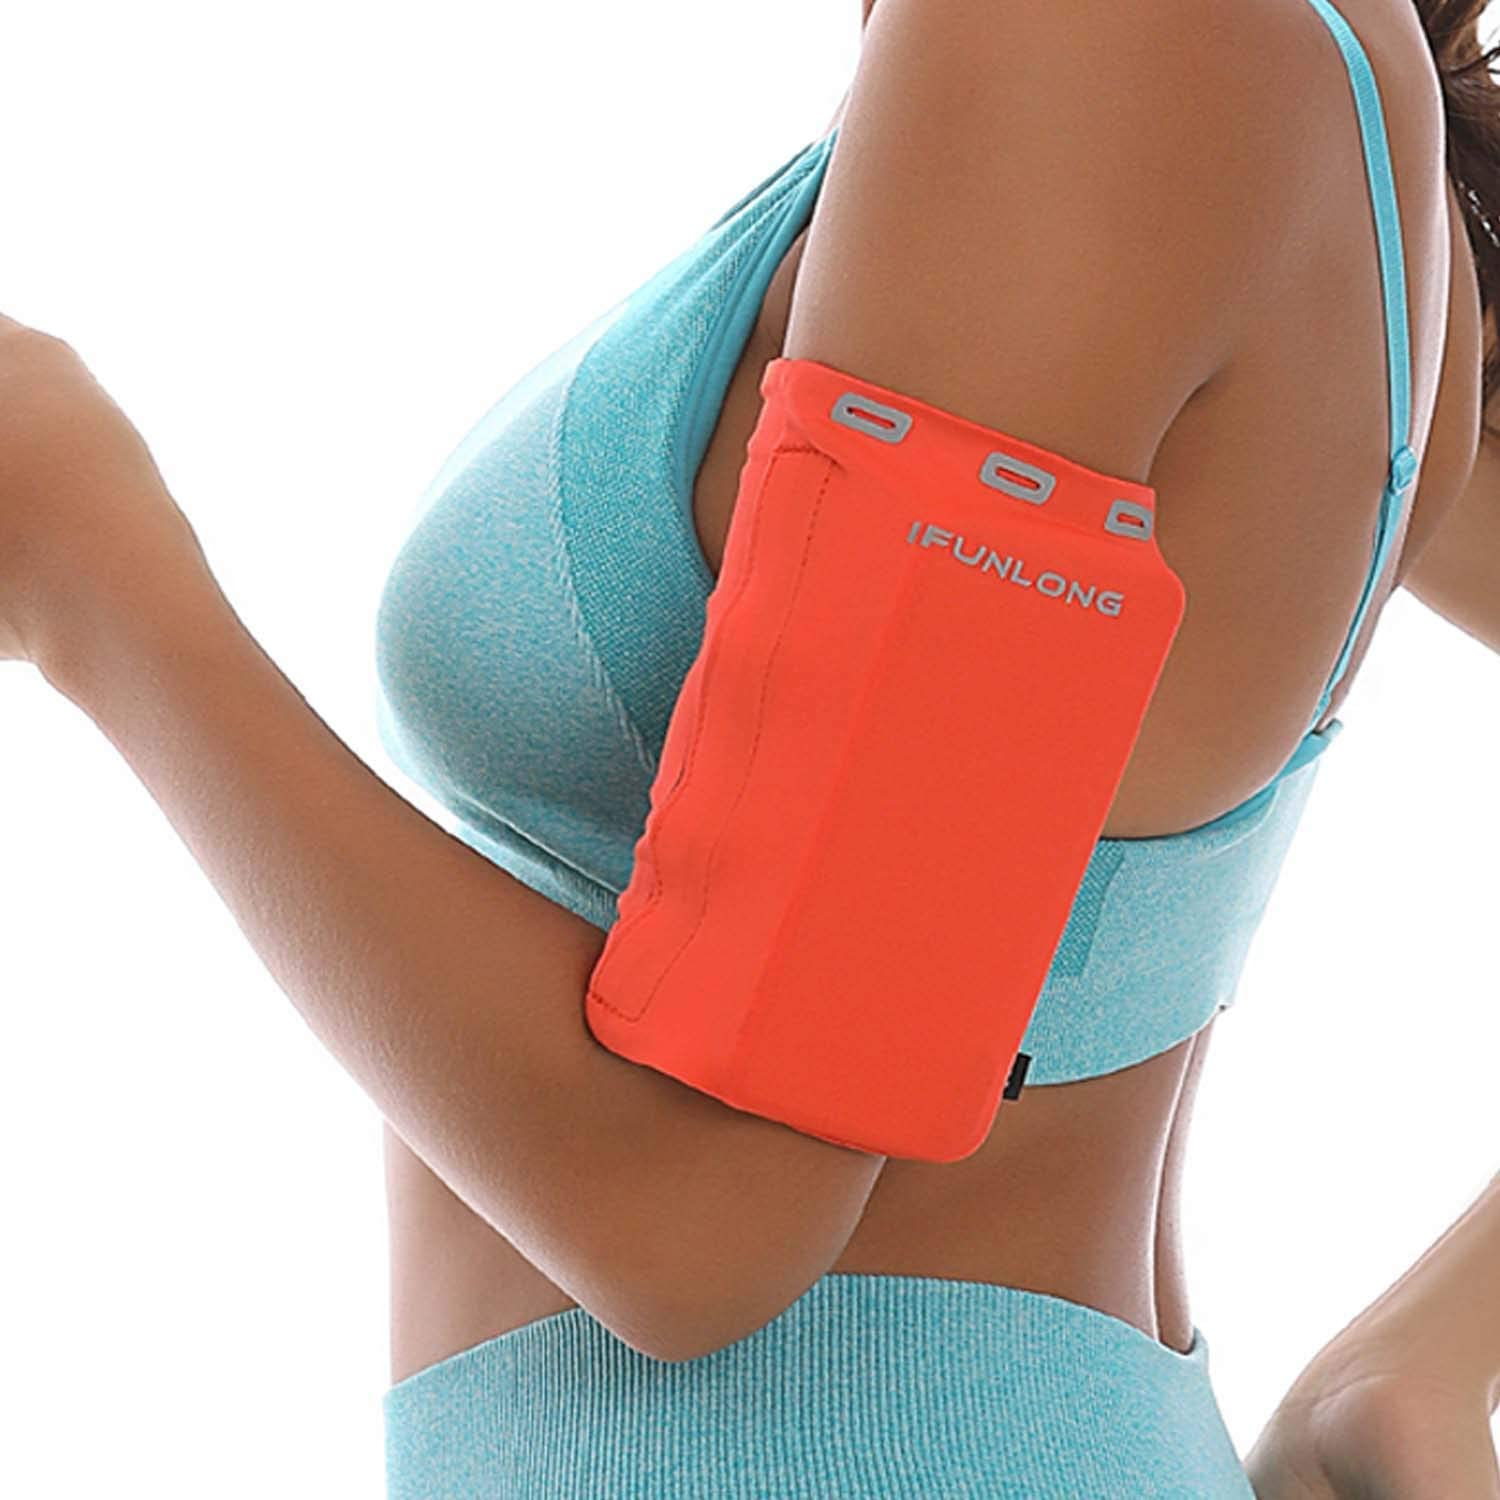 iFunLong Armband for Cell Phone Running | Exercise Working Out Sports Arm Band Sleeve Pouch Case Holder Fits iPhone 12 Pro Max Mini 11 X XR XS 8 7 Plus/Samsung LG Android Phones Upto 8 Inches